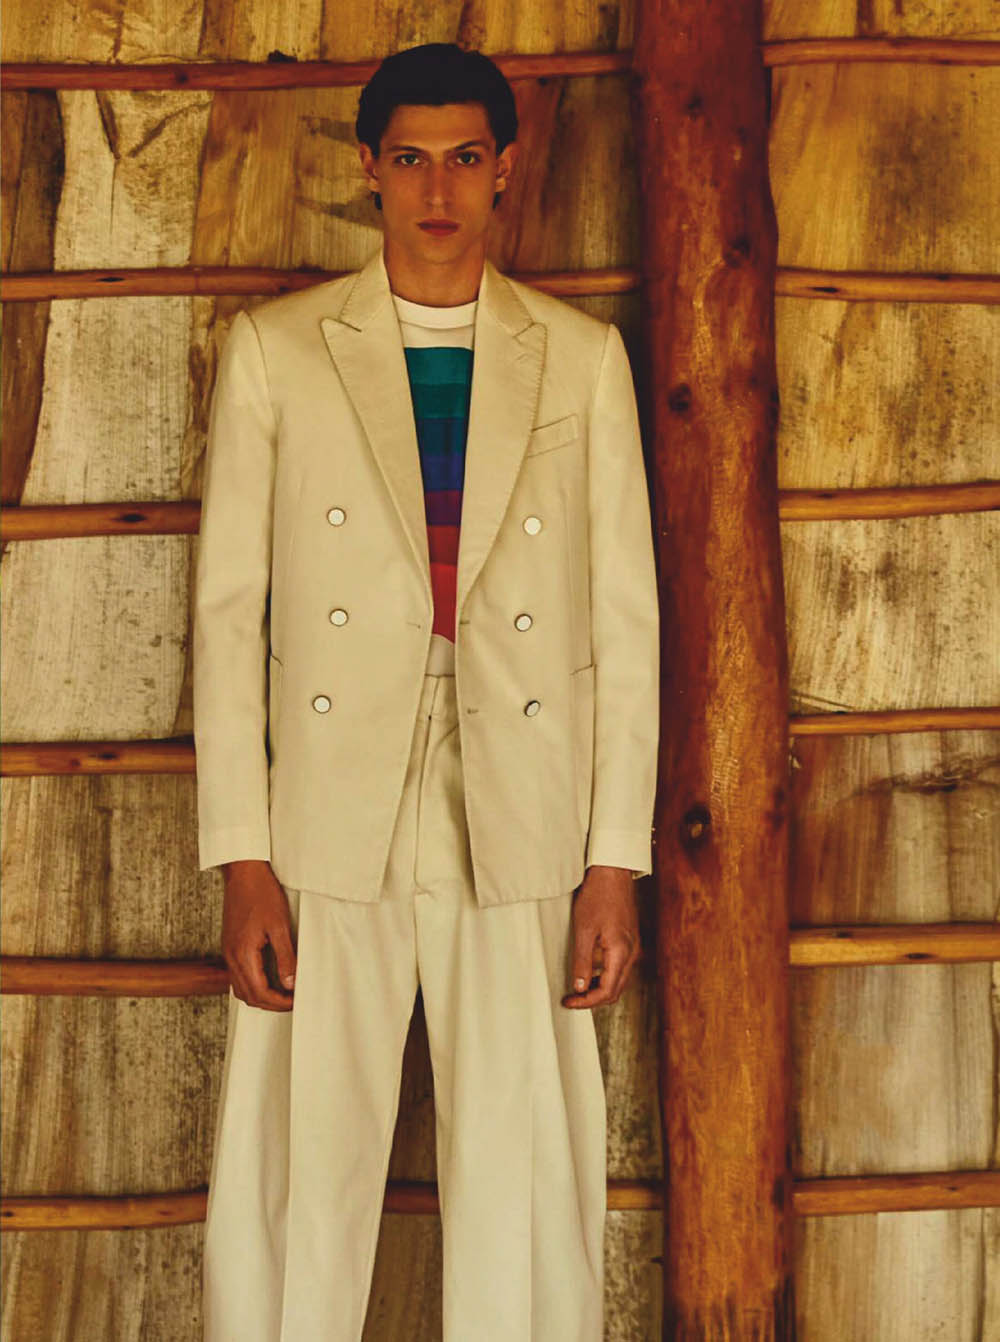 Edoardo Sebastianelli by Sergei Vasiliev for Esquire Spain June 2019